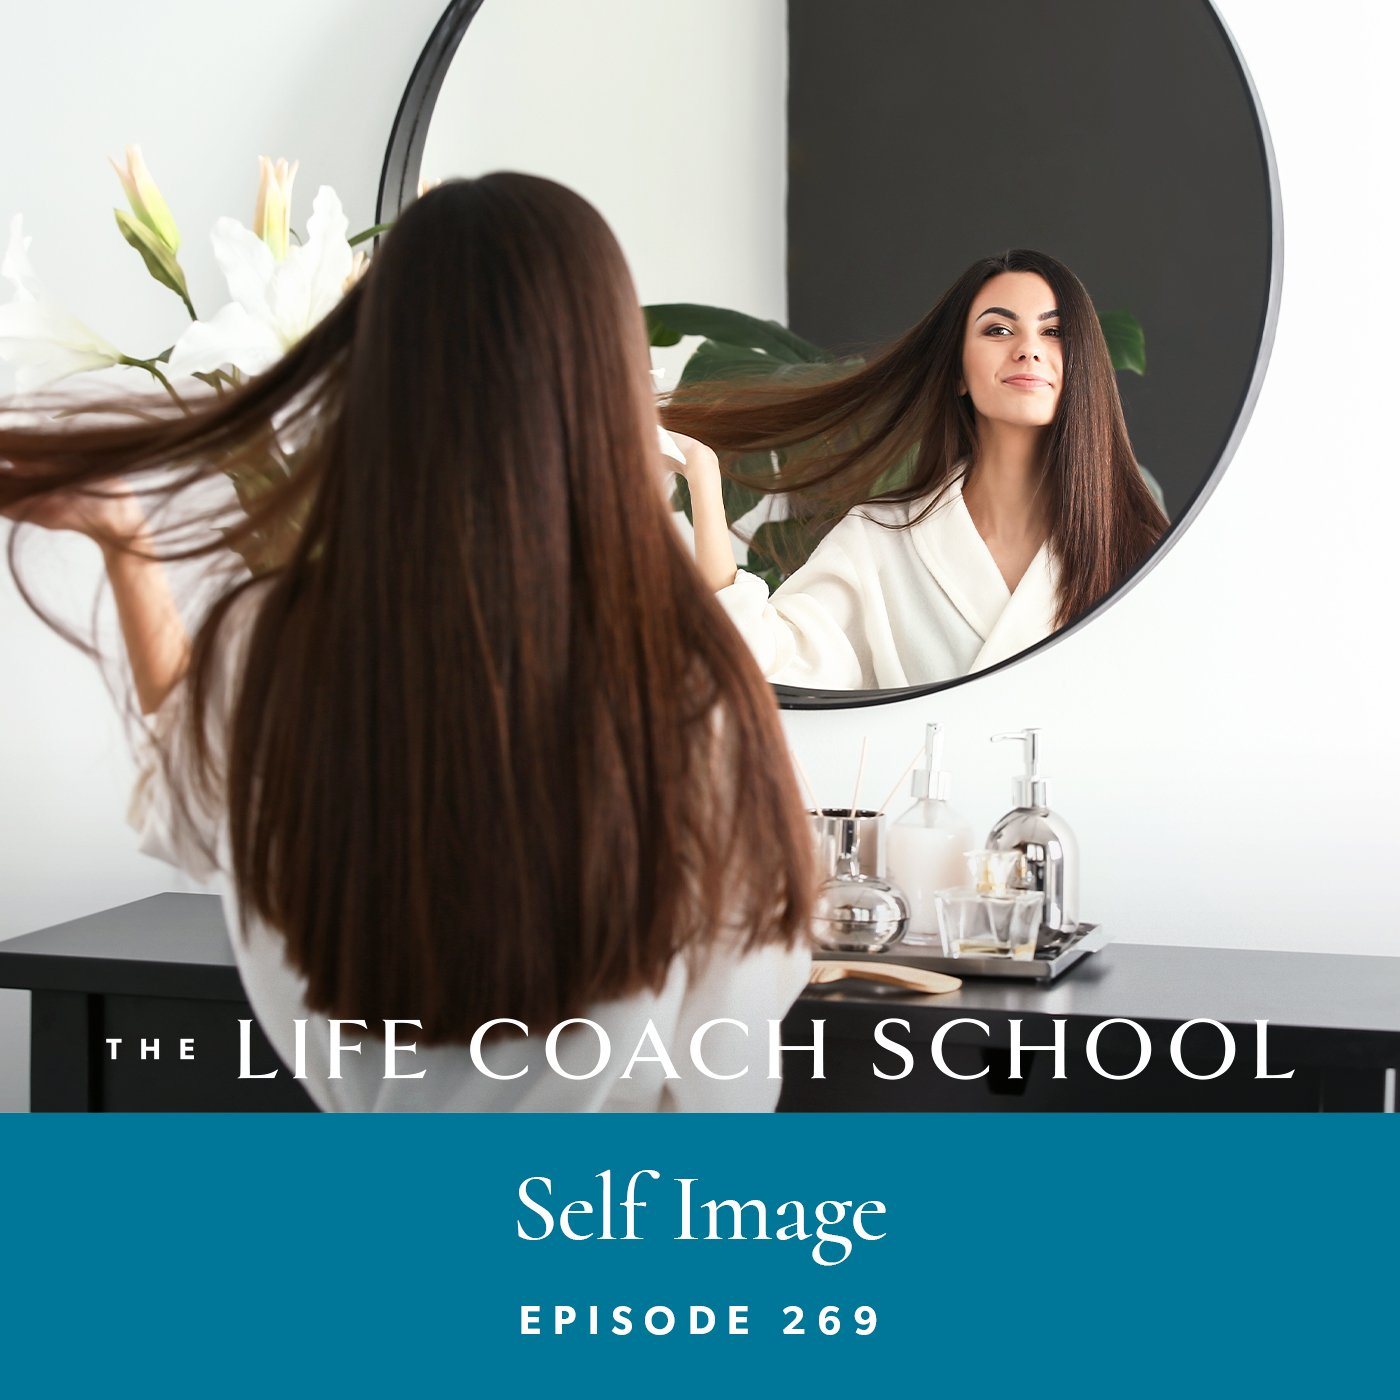 The Life Coach School Podcast with Brooke Castillo   Episode 269   Self Image